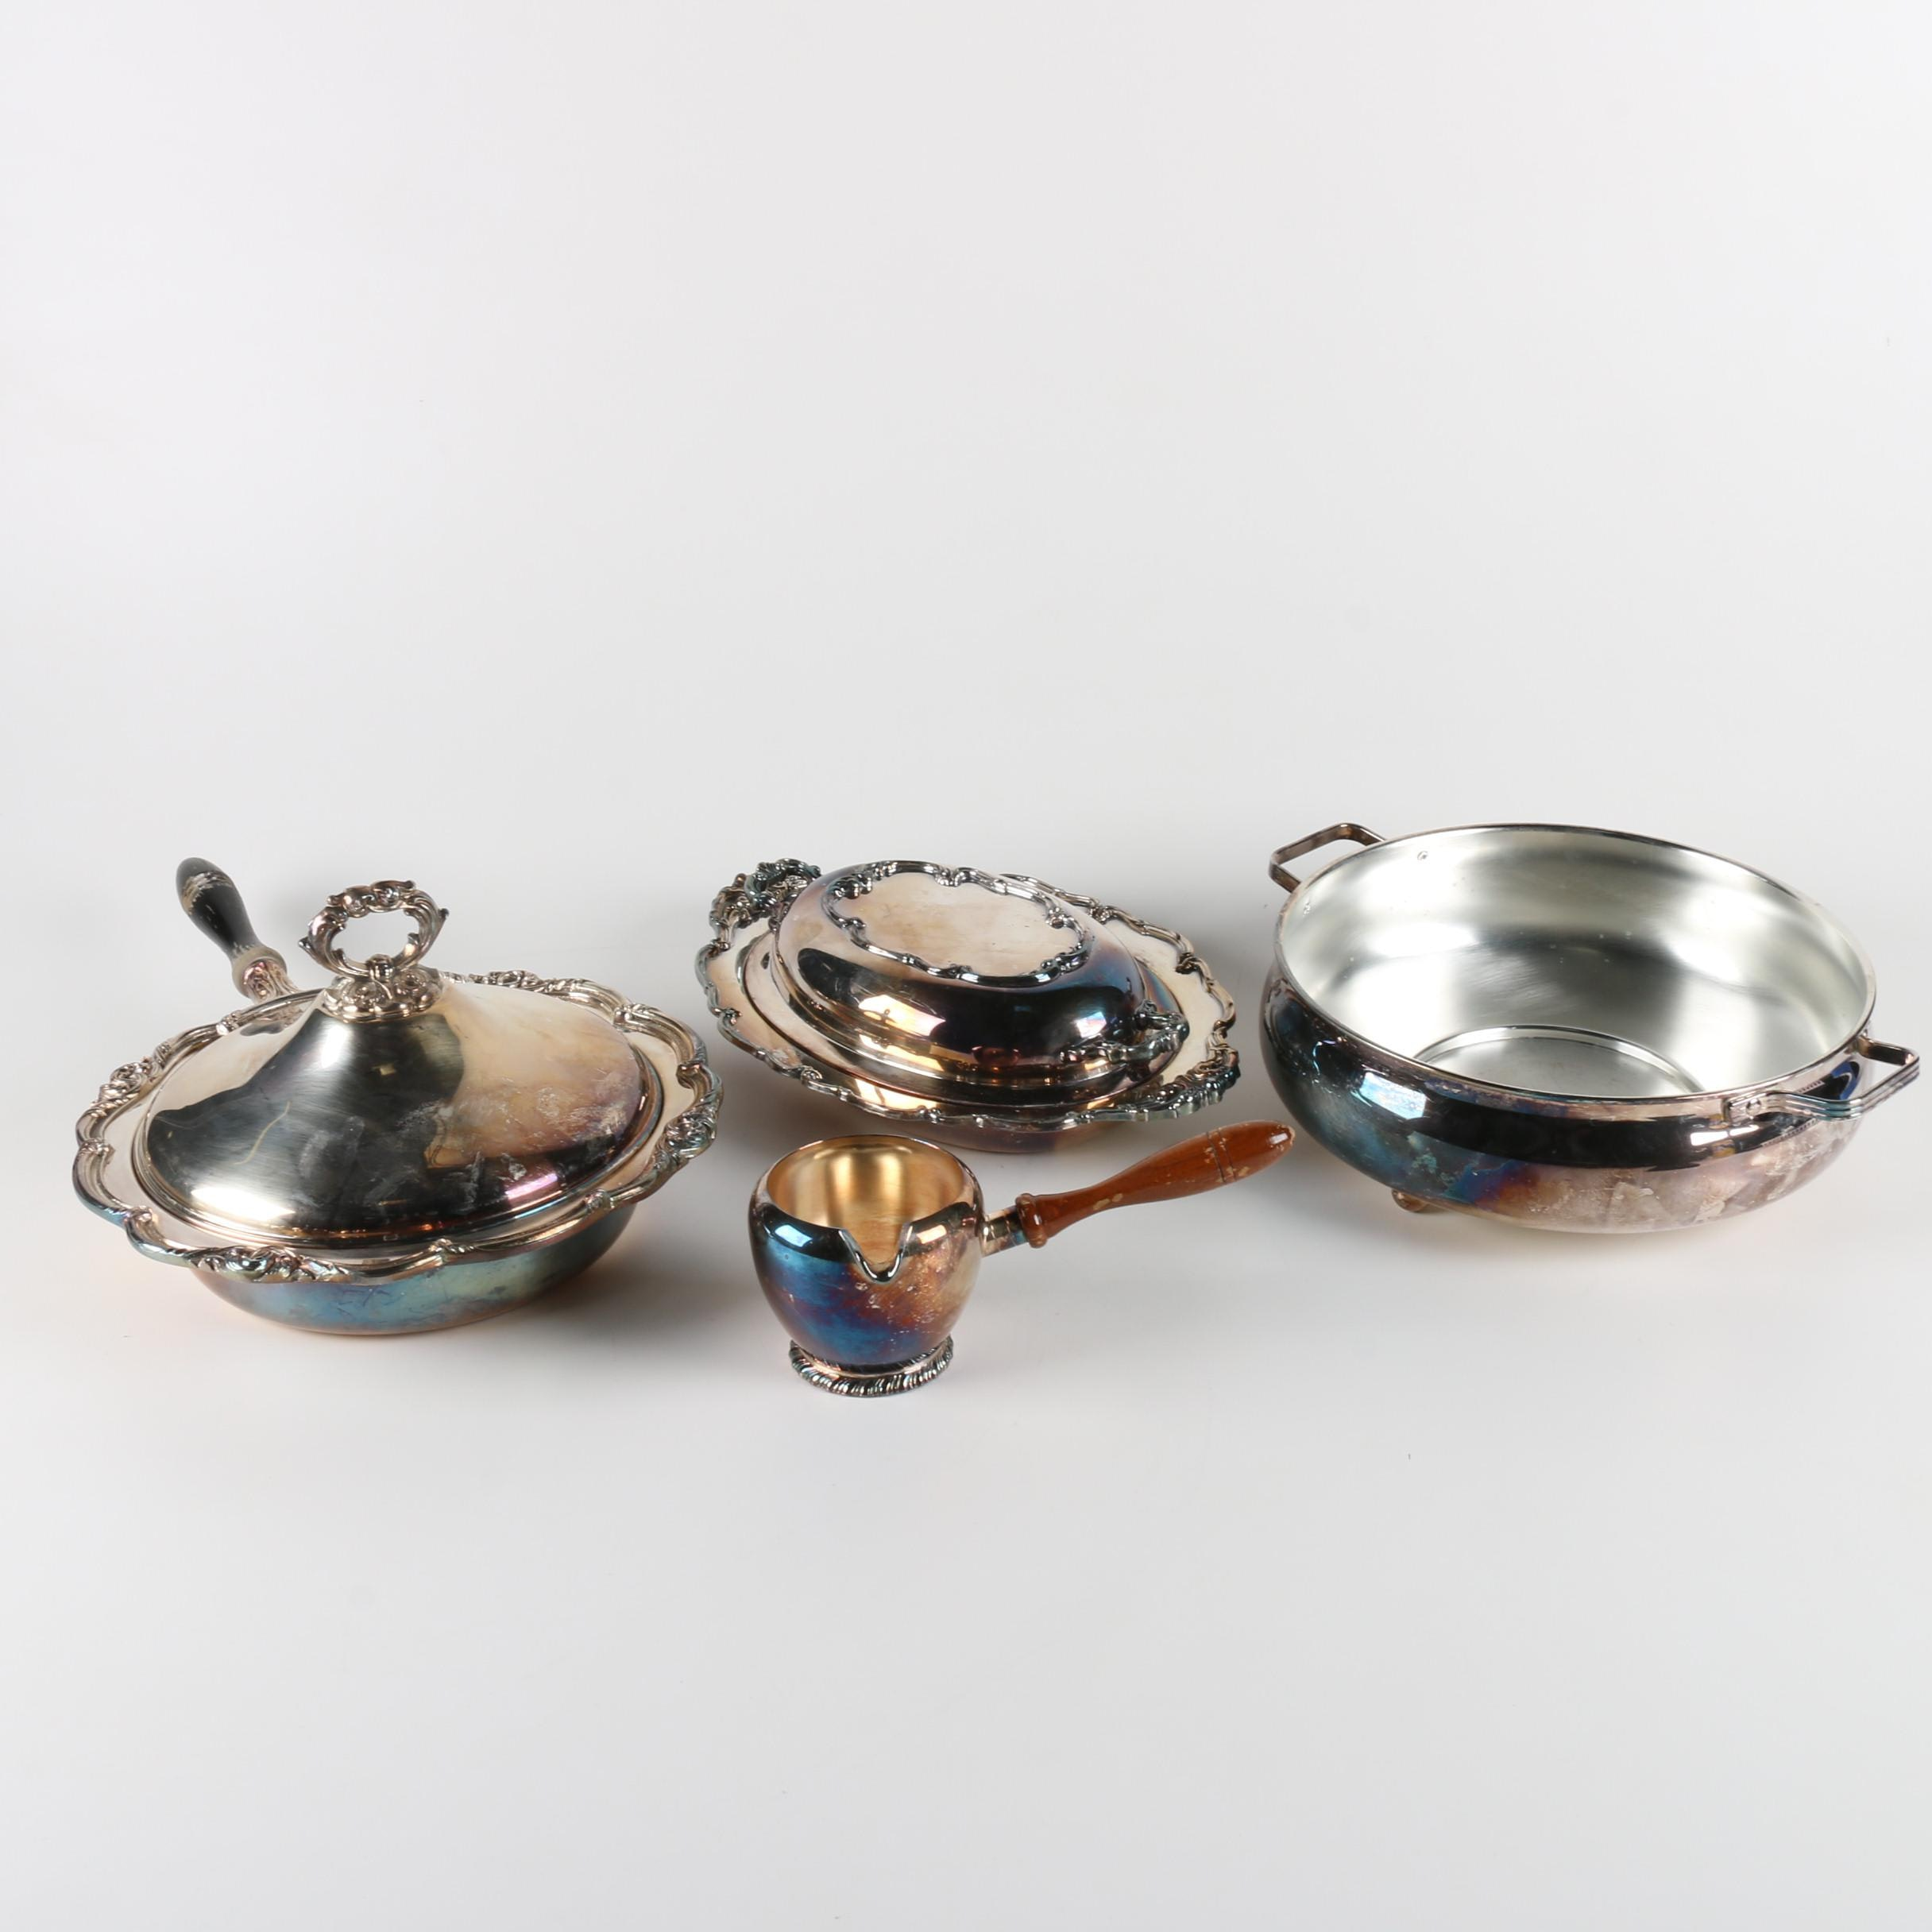 Silver Plate Serveware Featuring Friedman Silver Co.